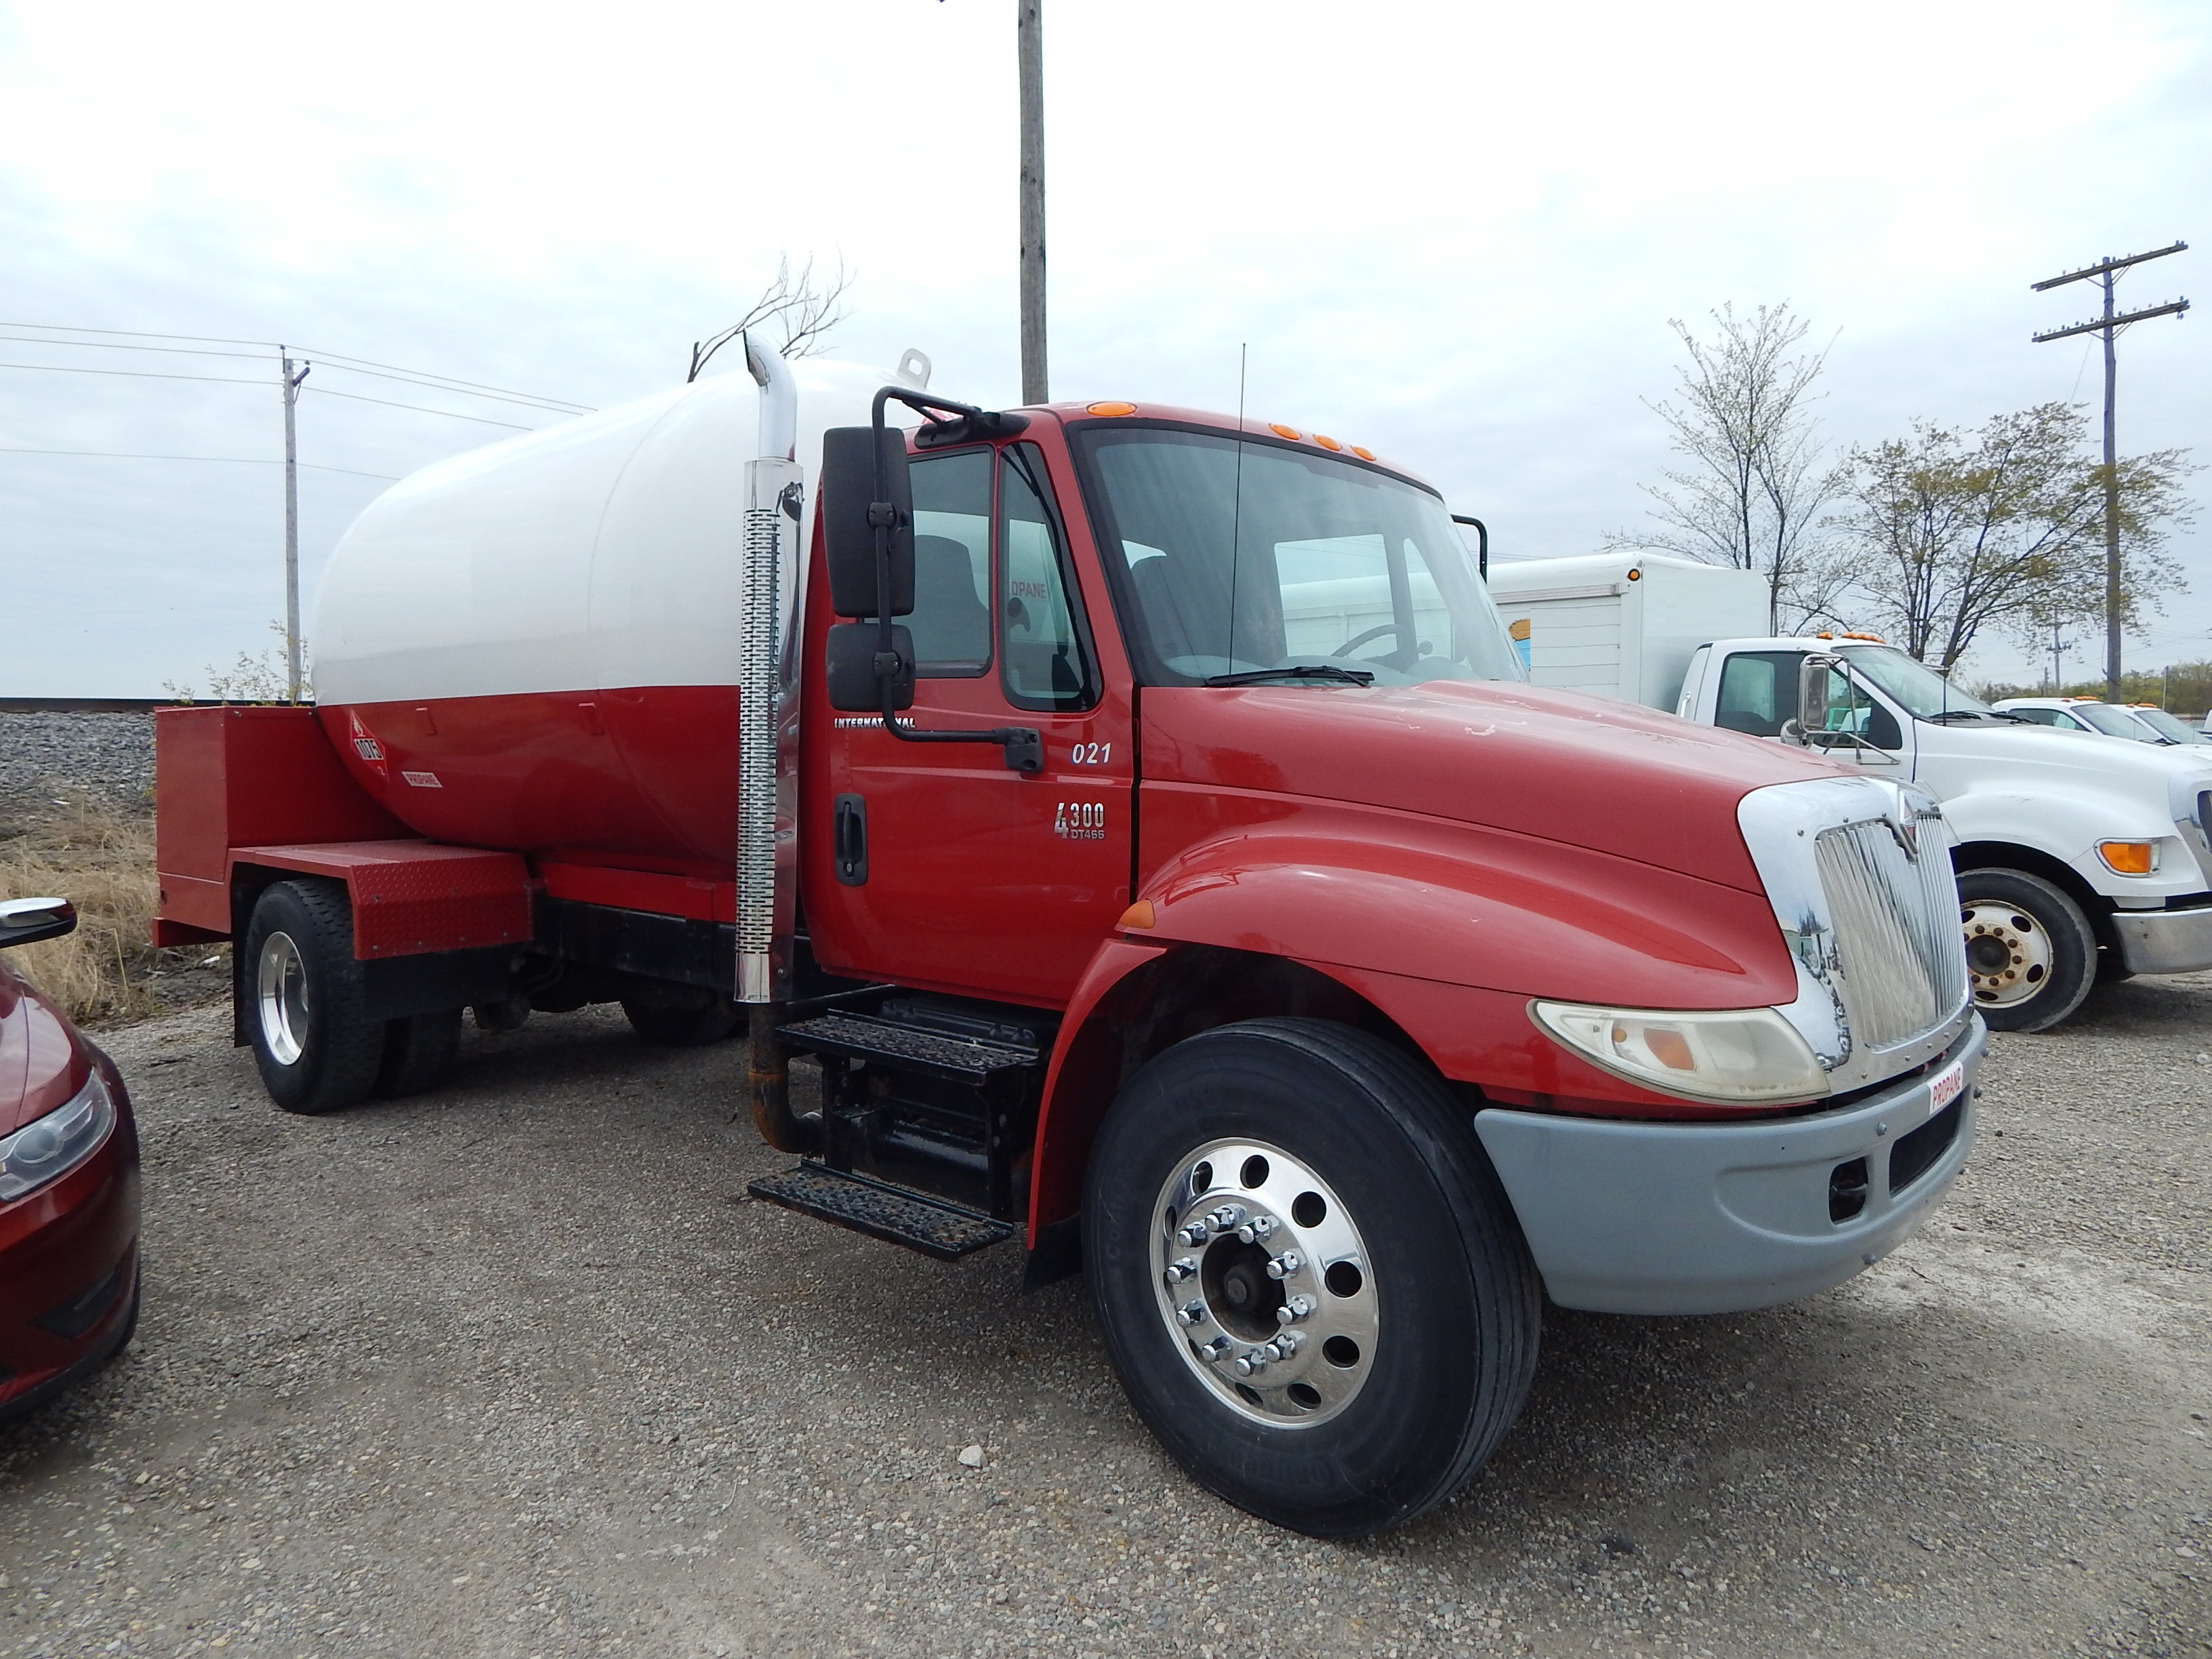 Used LP delivery truck for sale